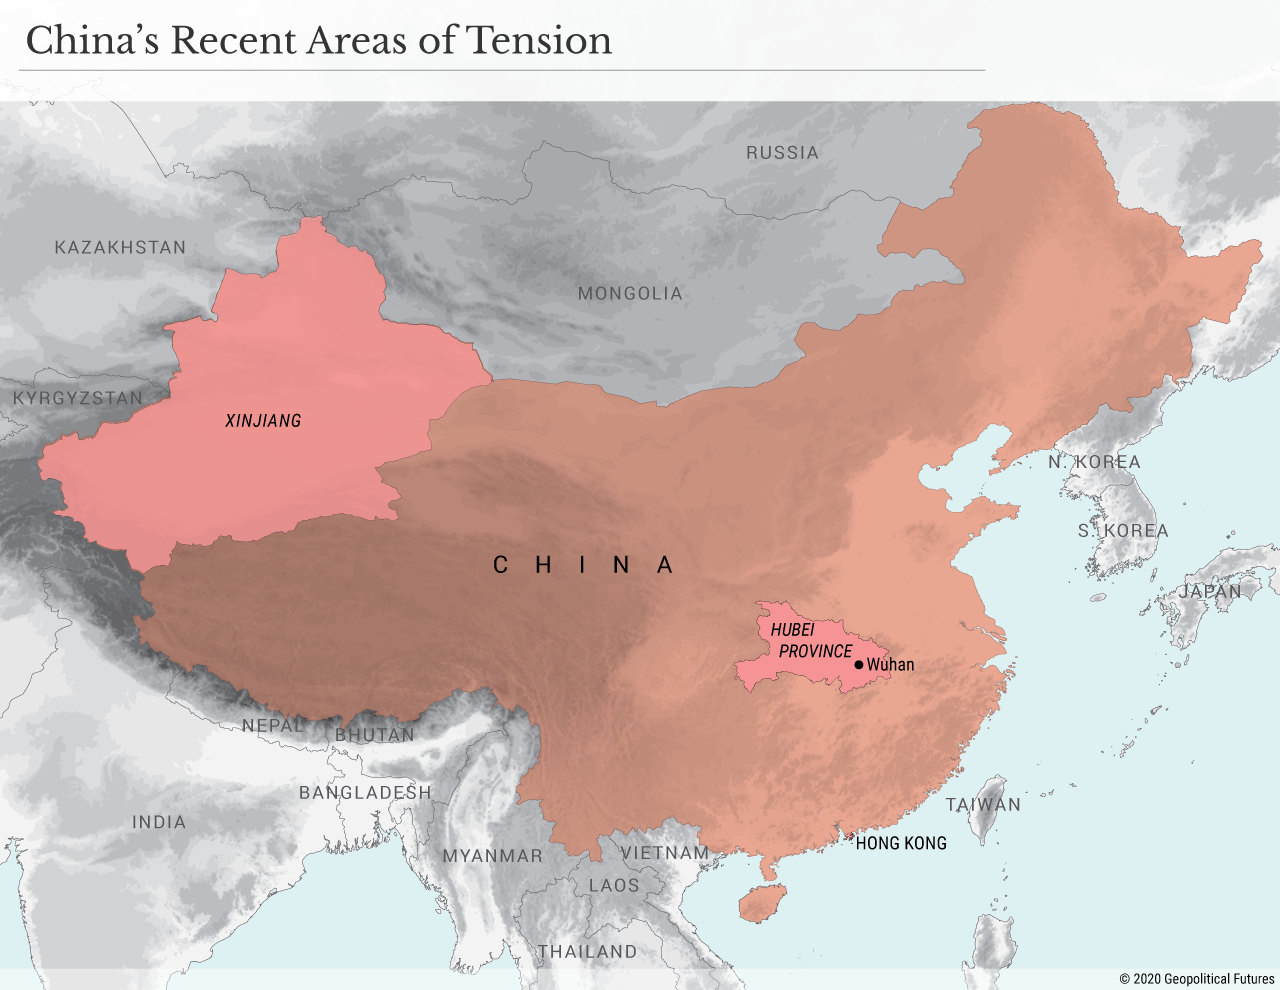 China's Recent Areas of Tension